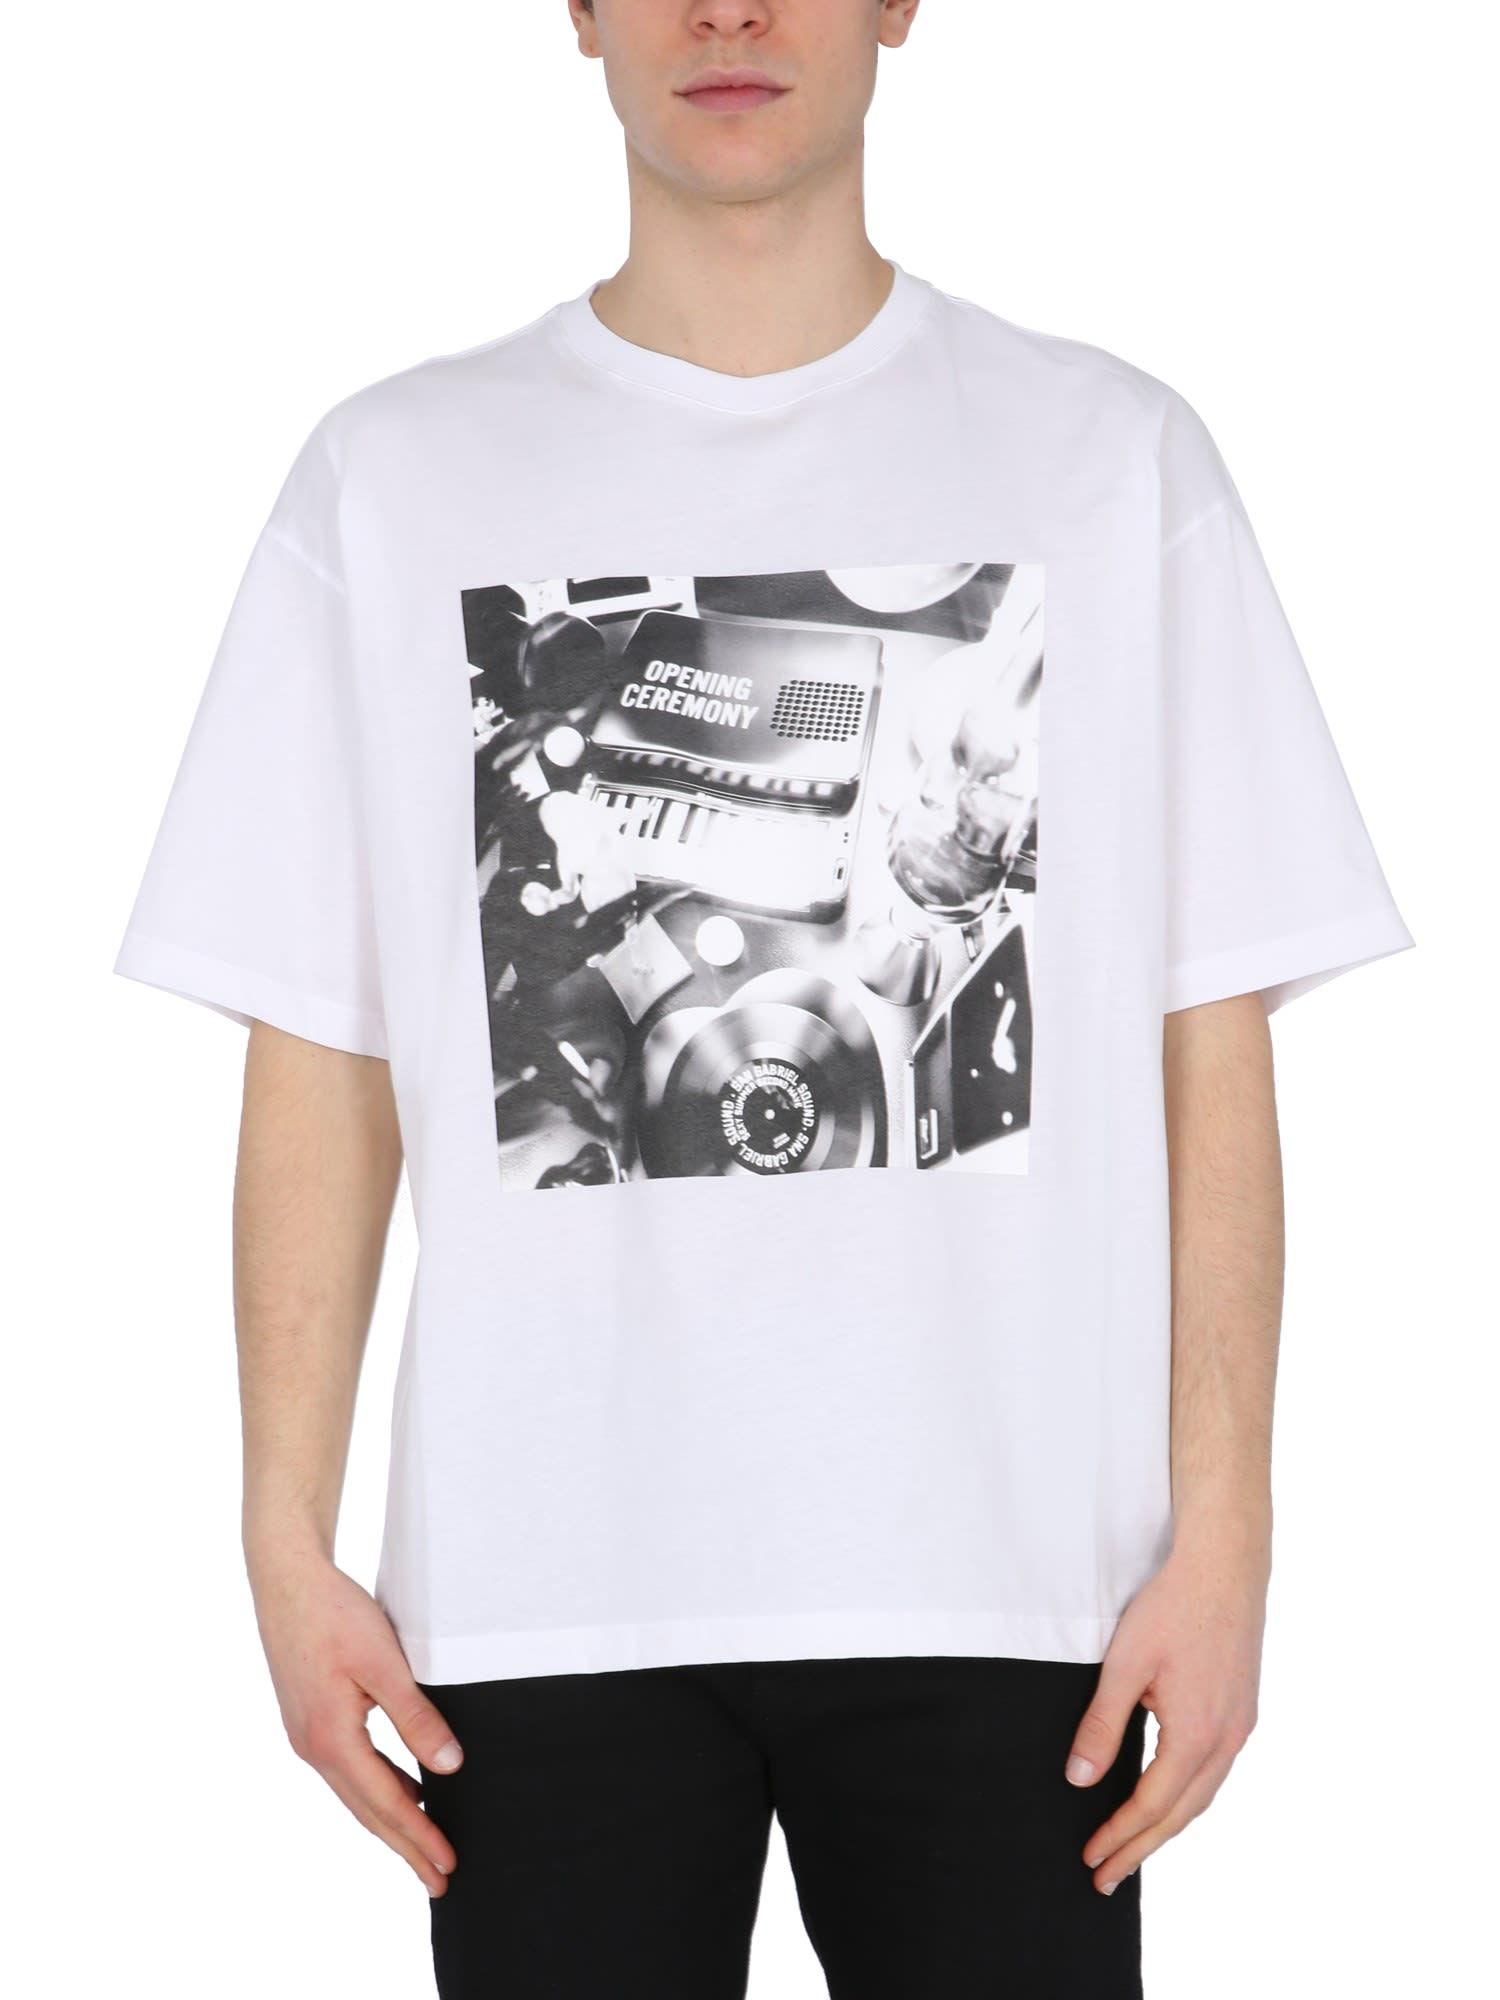 Opening Ceremony Clothing T-SHIRT WITH PIANOPRINT PRINT